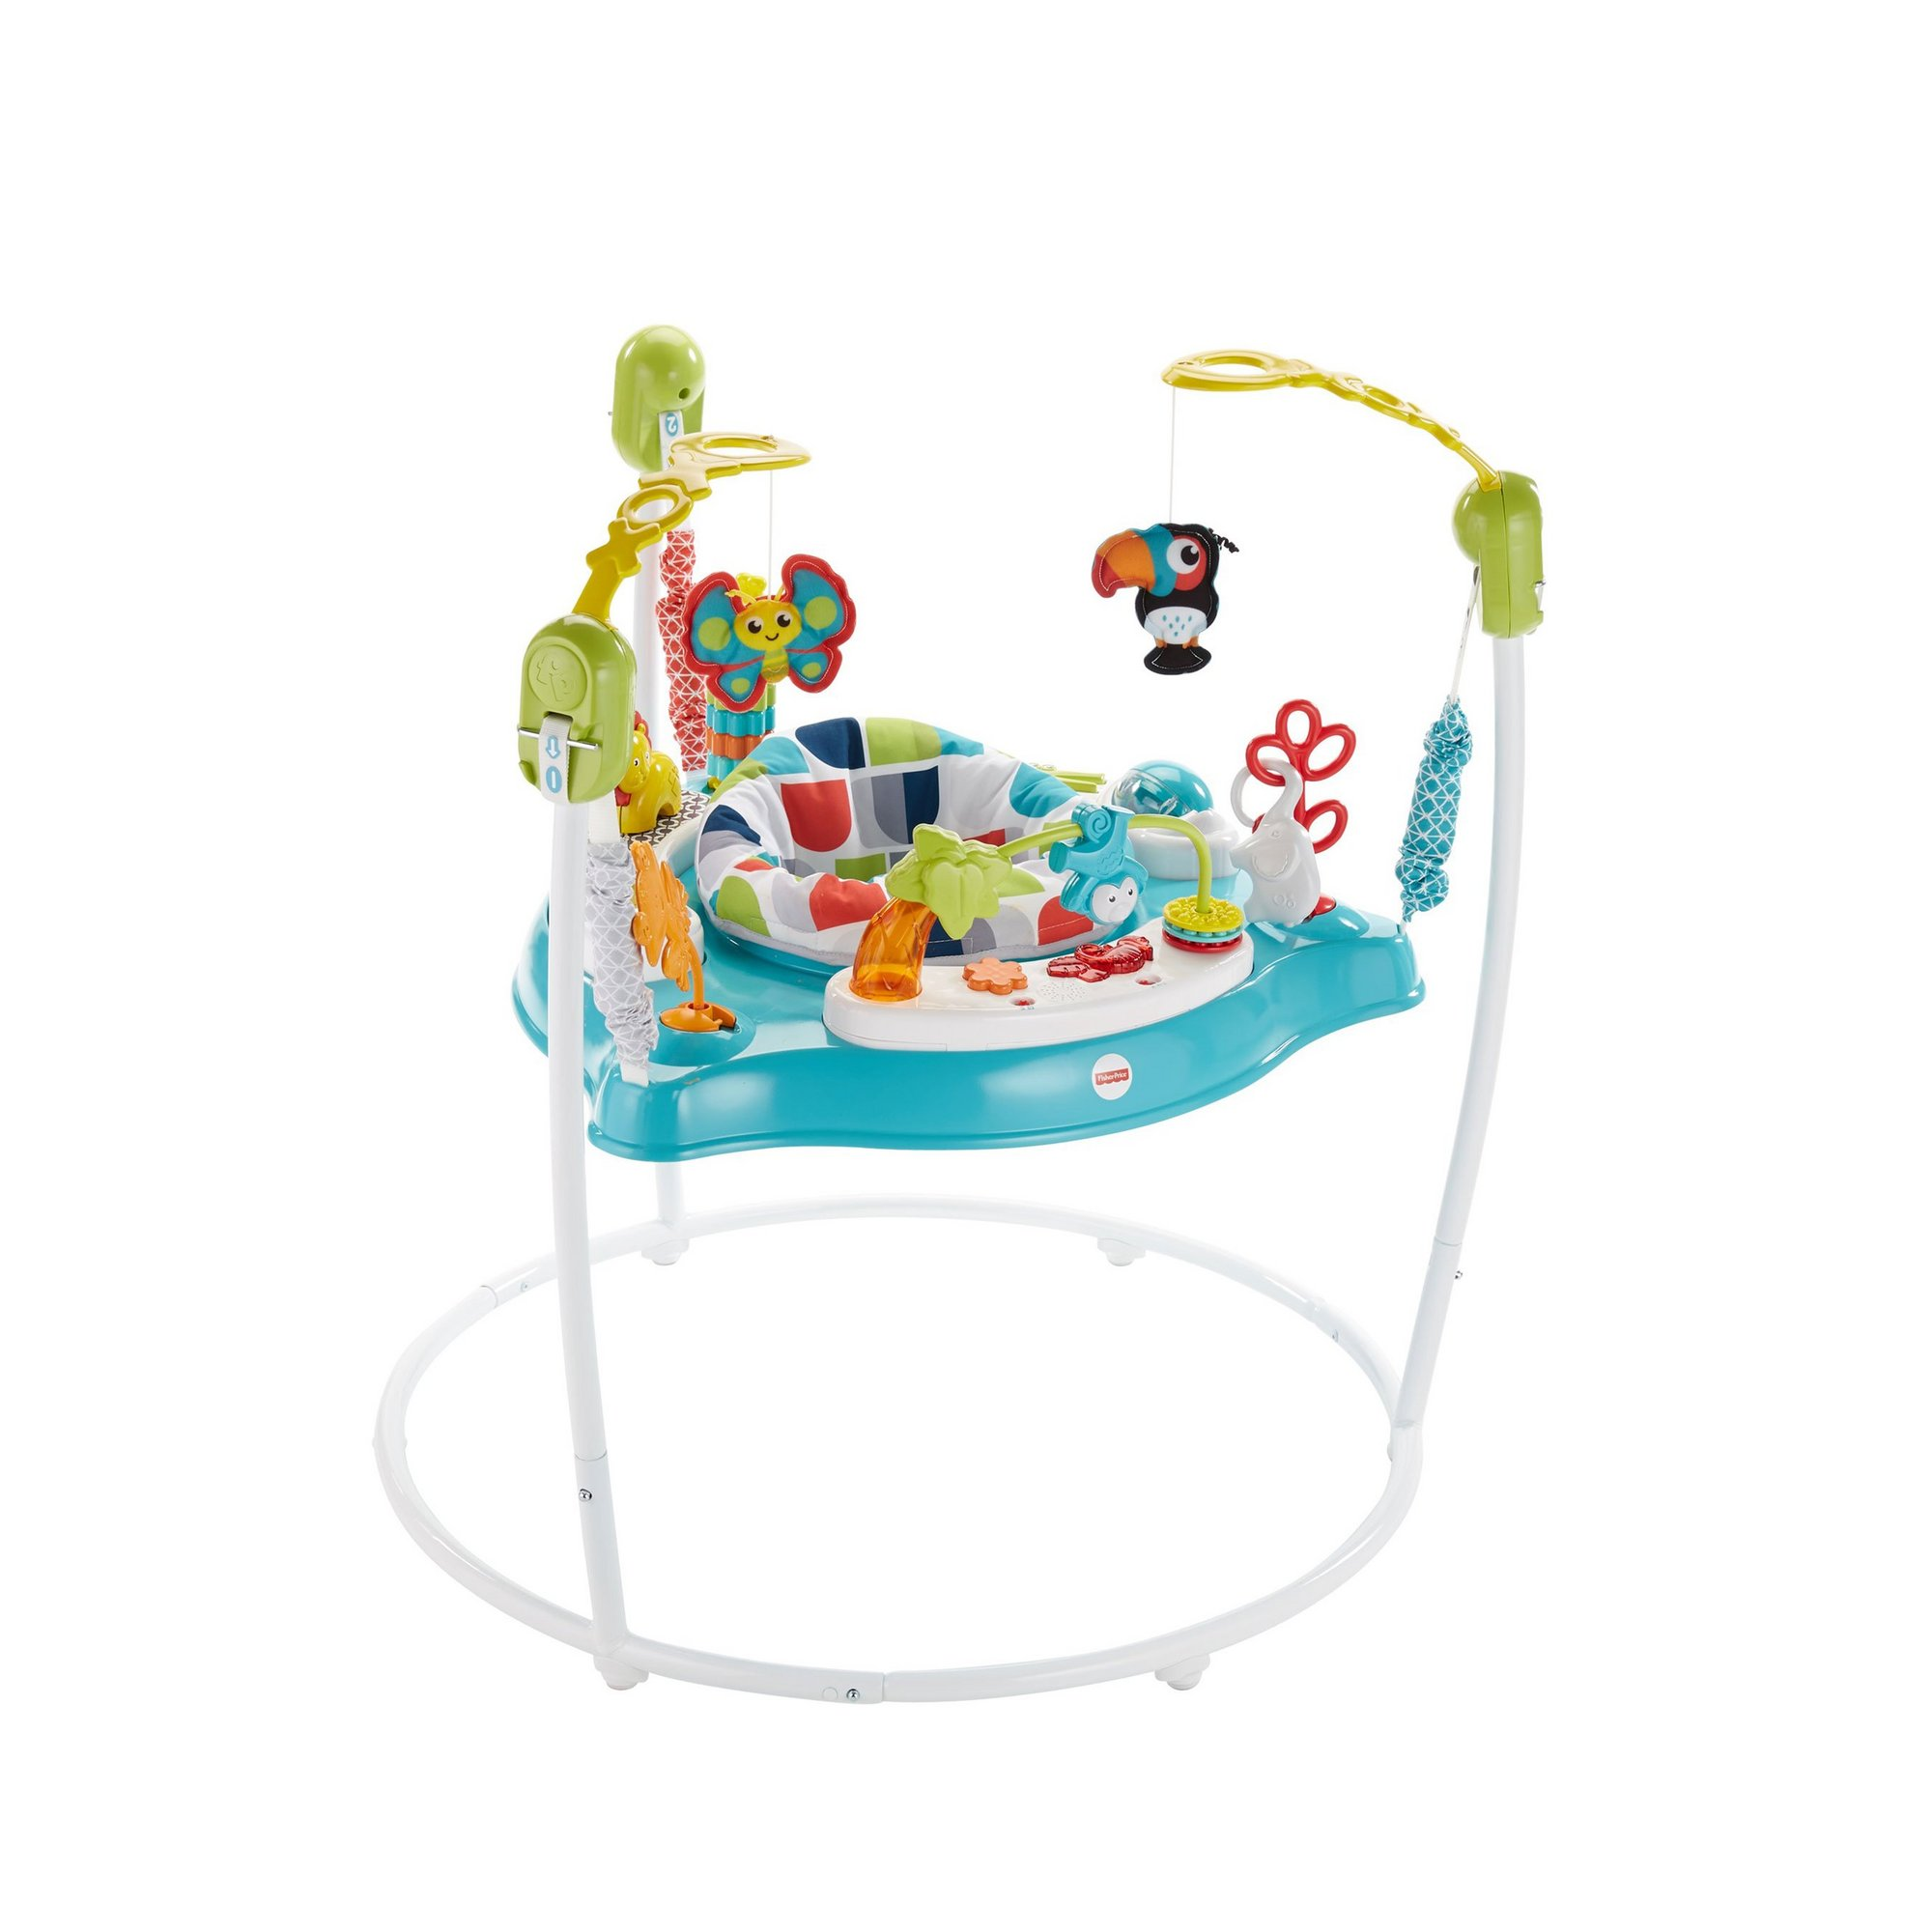 Image of Colour Climber Jumperoo